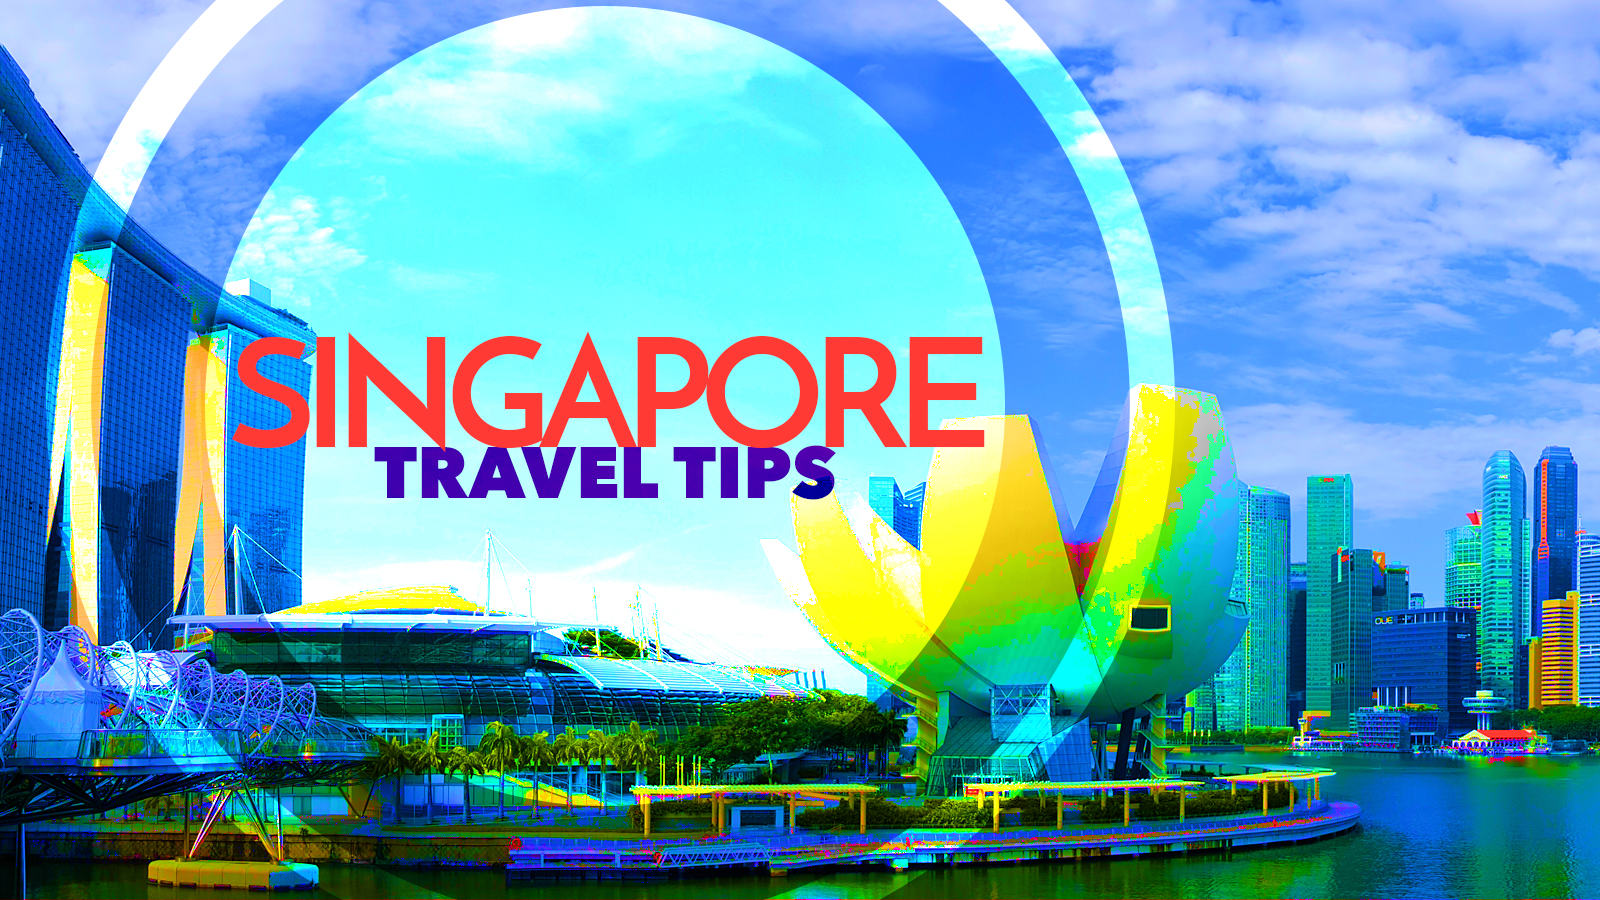 Travel Tips: What to expect in Singapore